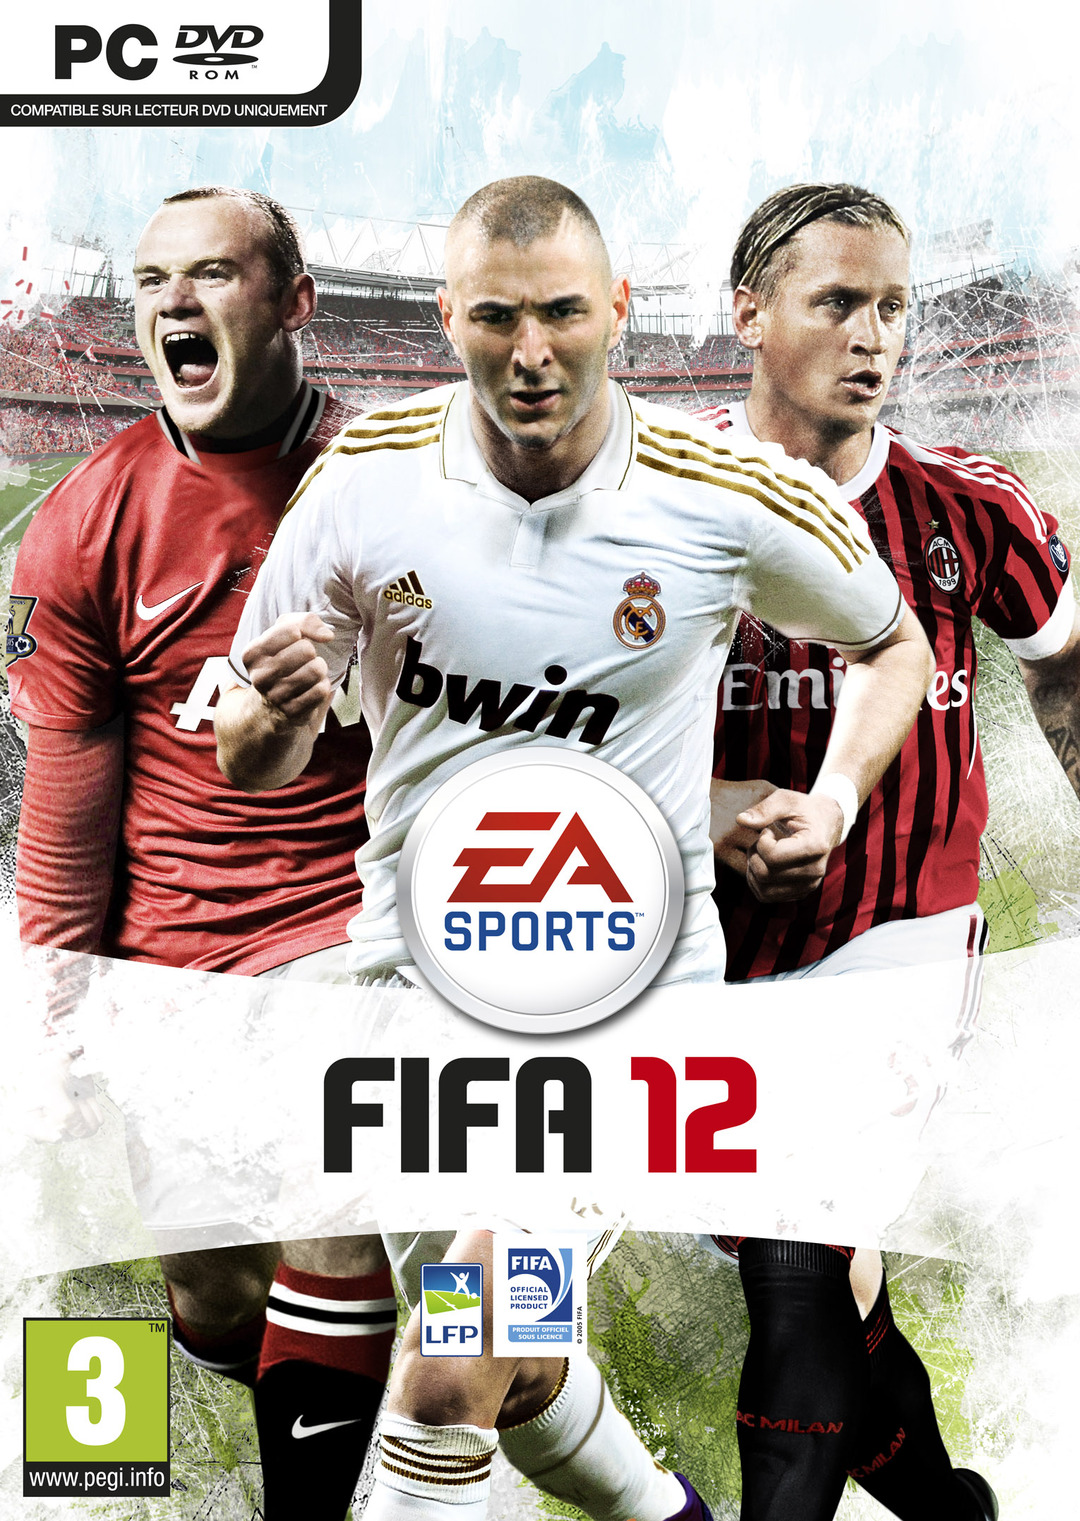 FIFA 12 DEMO PC | Megaupload Multi Lien